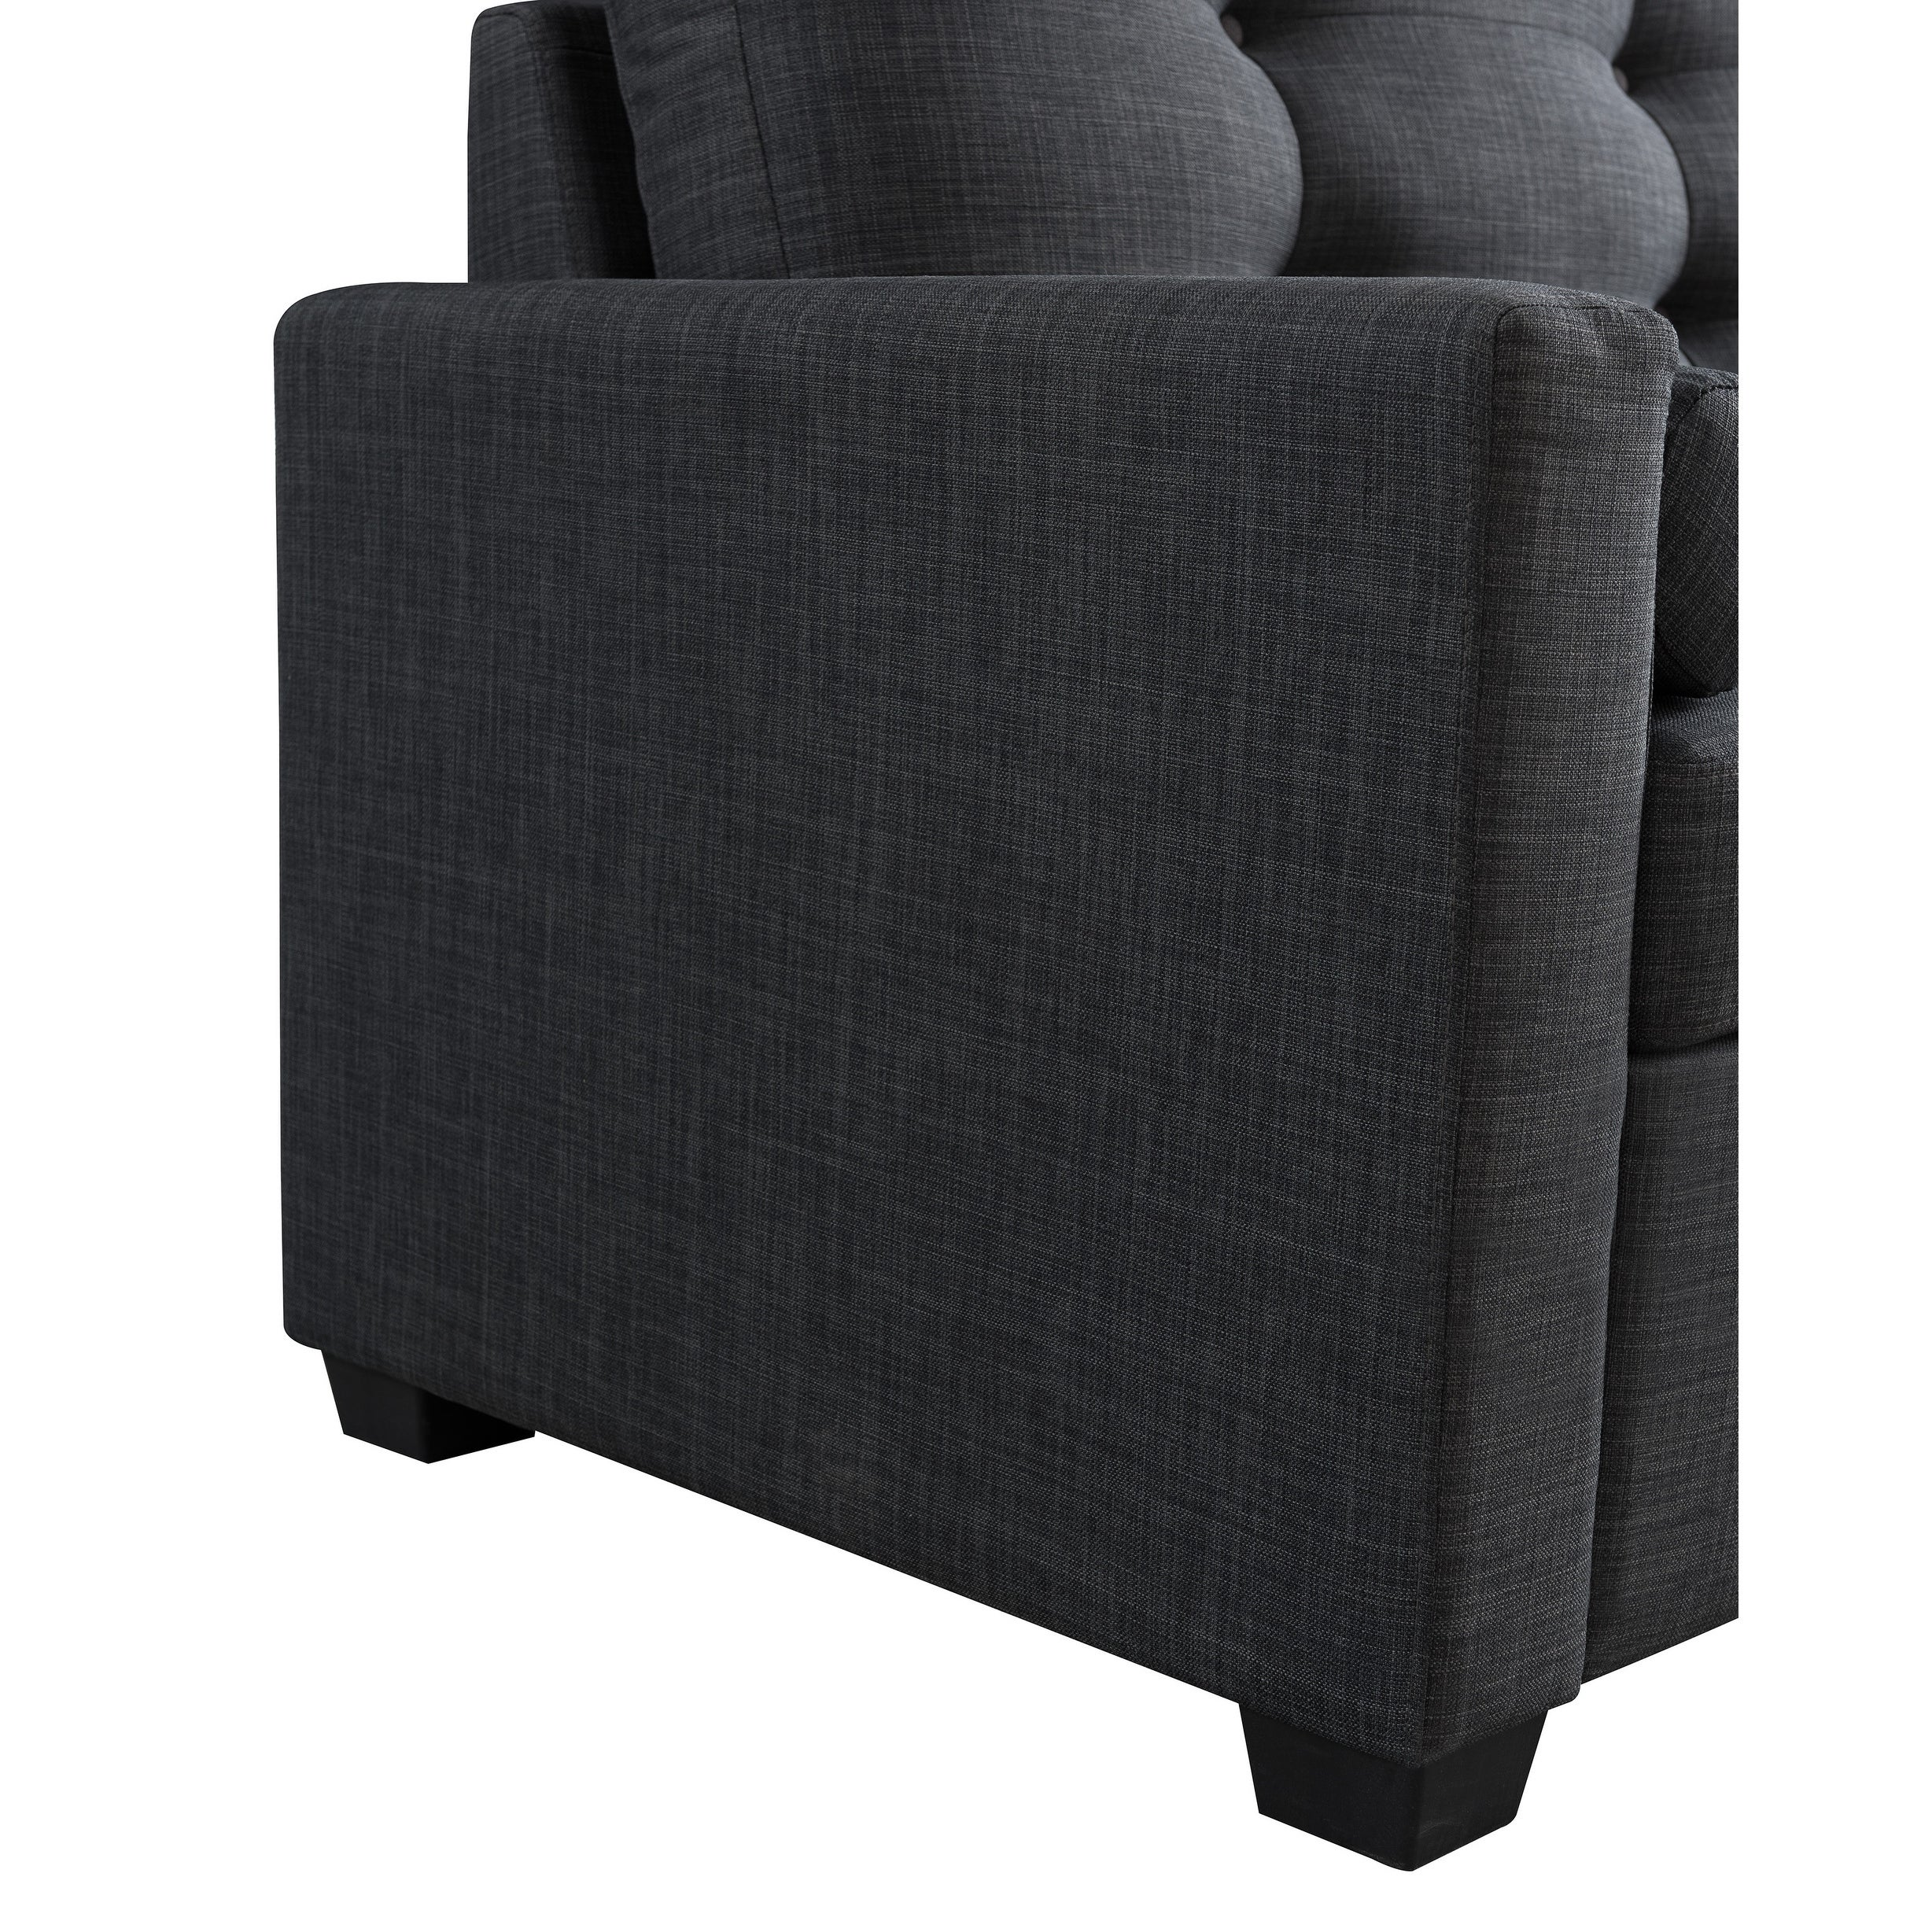 Shop Avesta Gray Tufted Twin Size Convertible Sleeper Chair - Free Shipping Today - Overstock.com - 19851968  sc 1 st  Overstock.com & Shop Avesta Gray Tufted Twin Size Convertible Sleeper Chair - Free ...